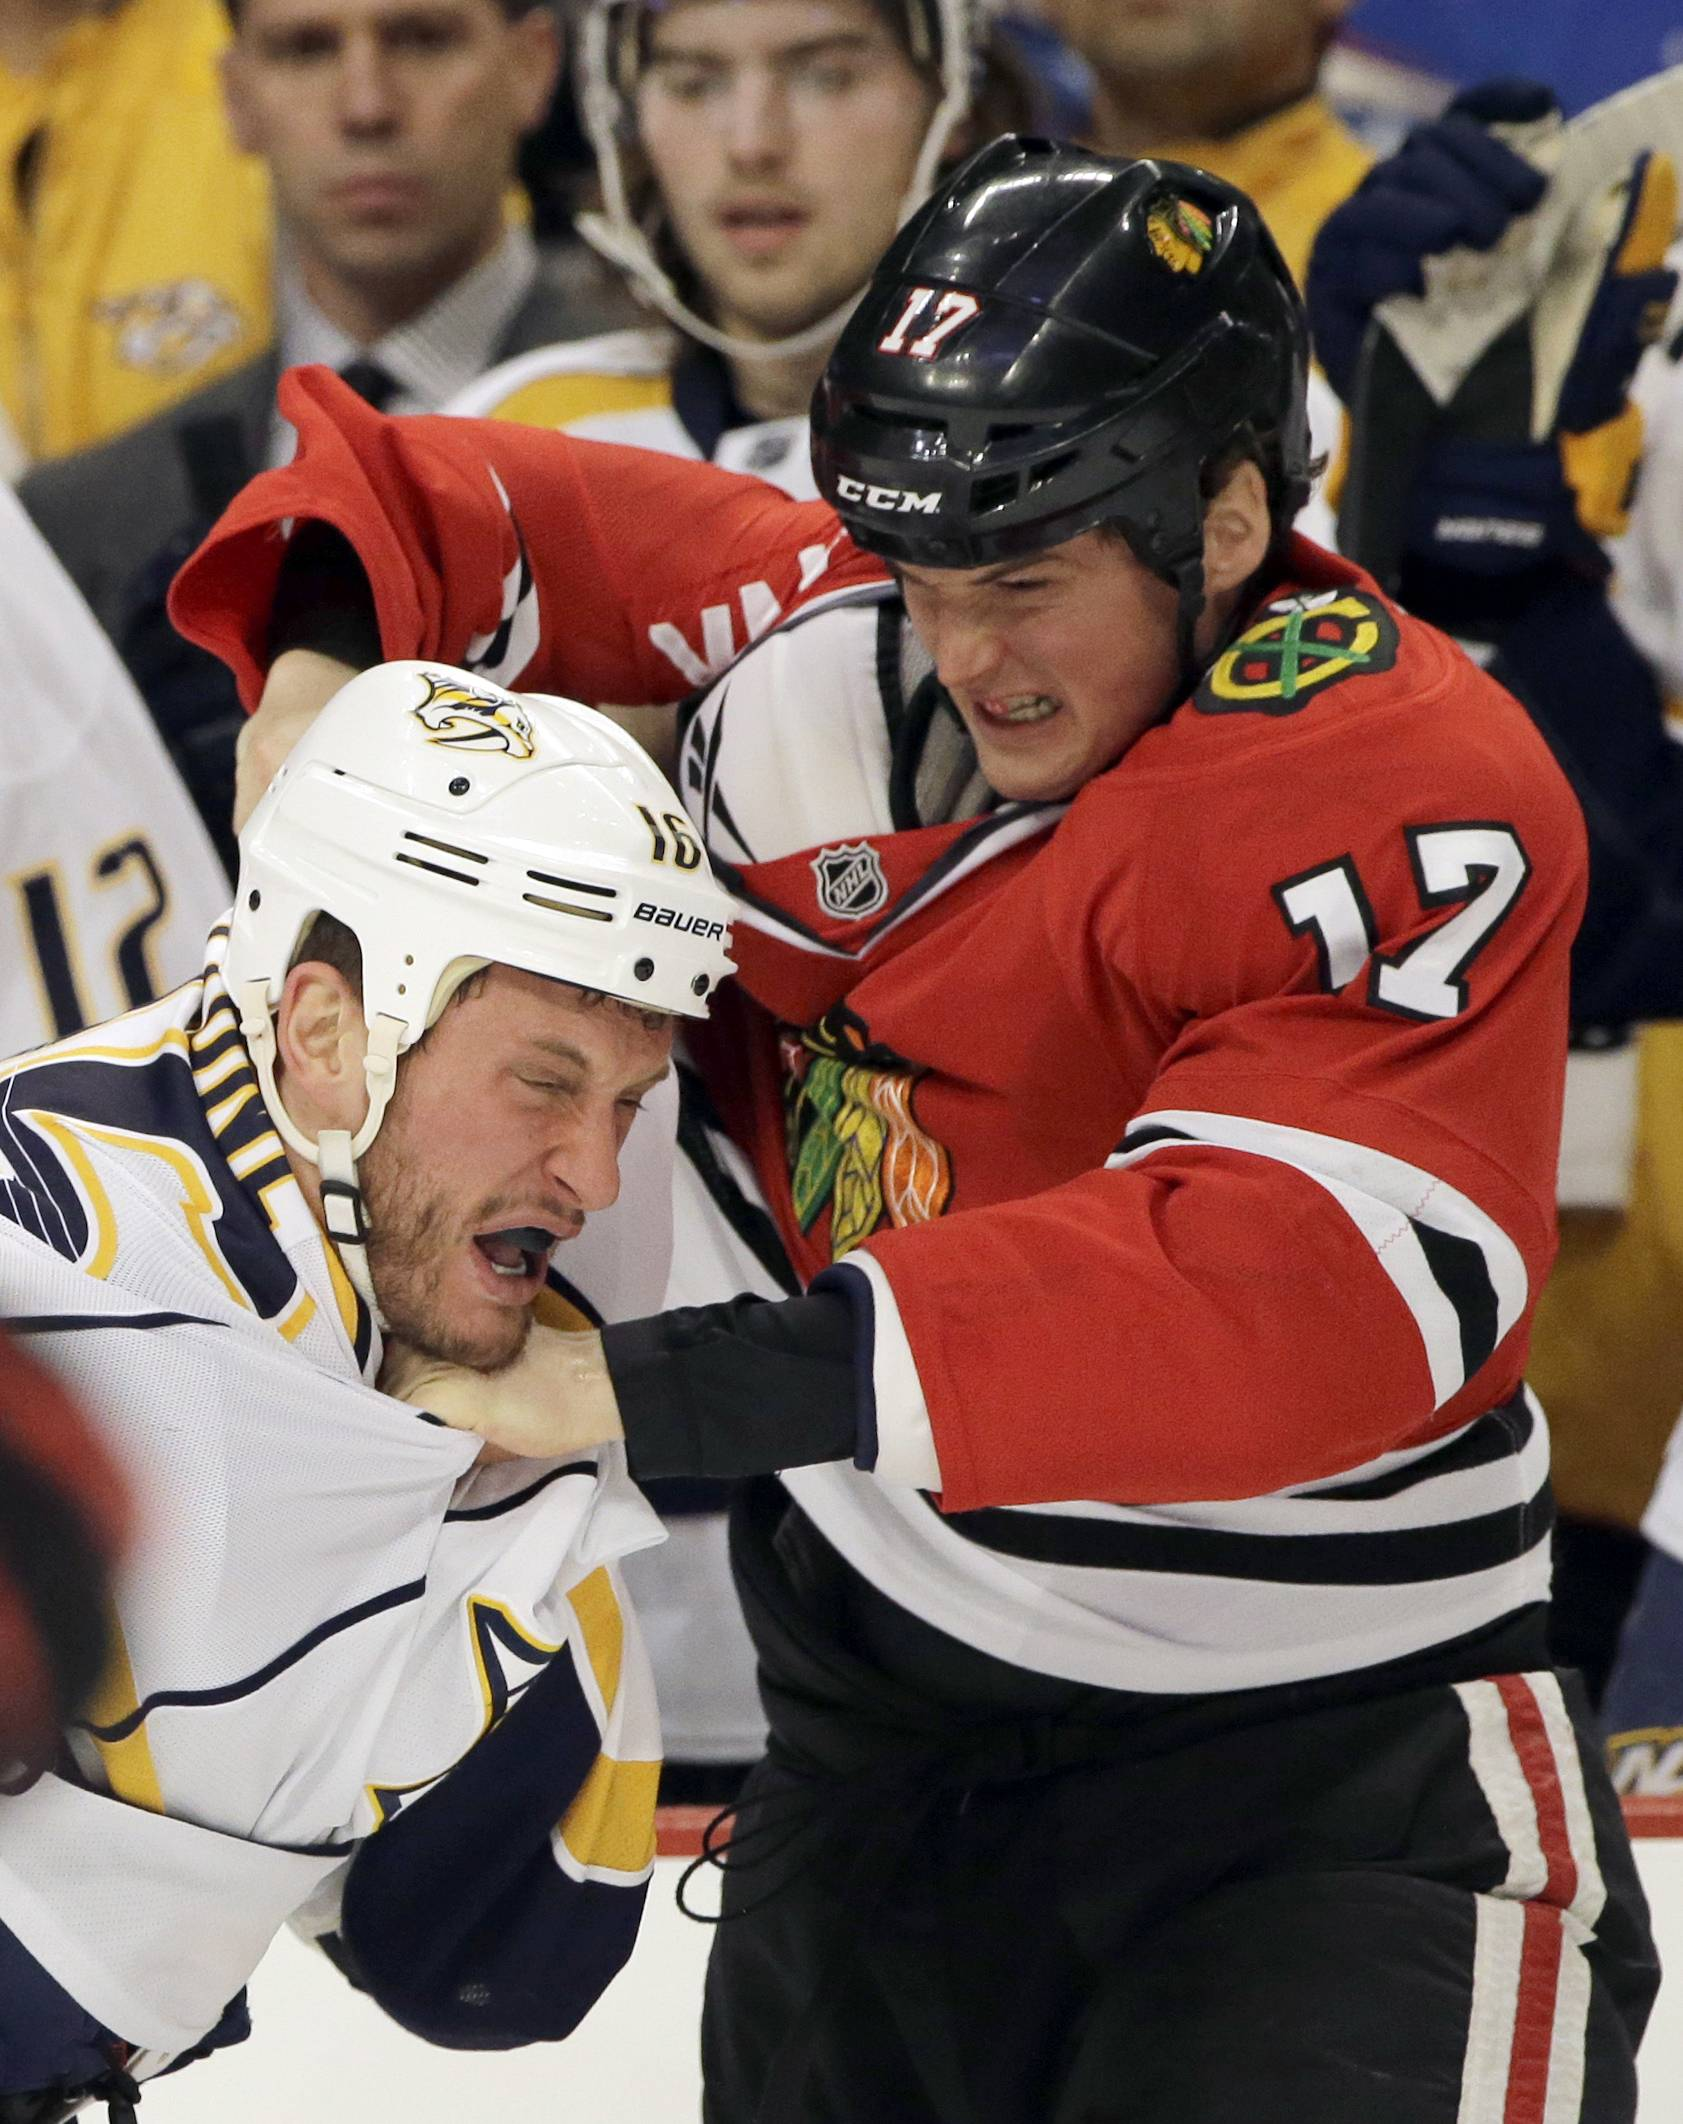 The Blackhawks' Sheldon Brookbank squares off with the Predators' Rich Clune during Sunday's game at the United Center.